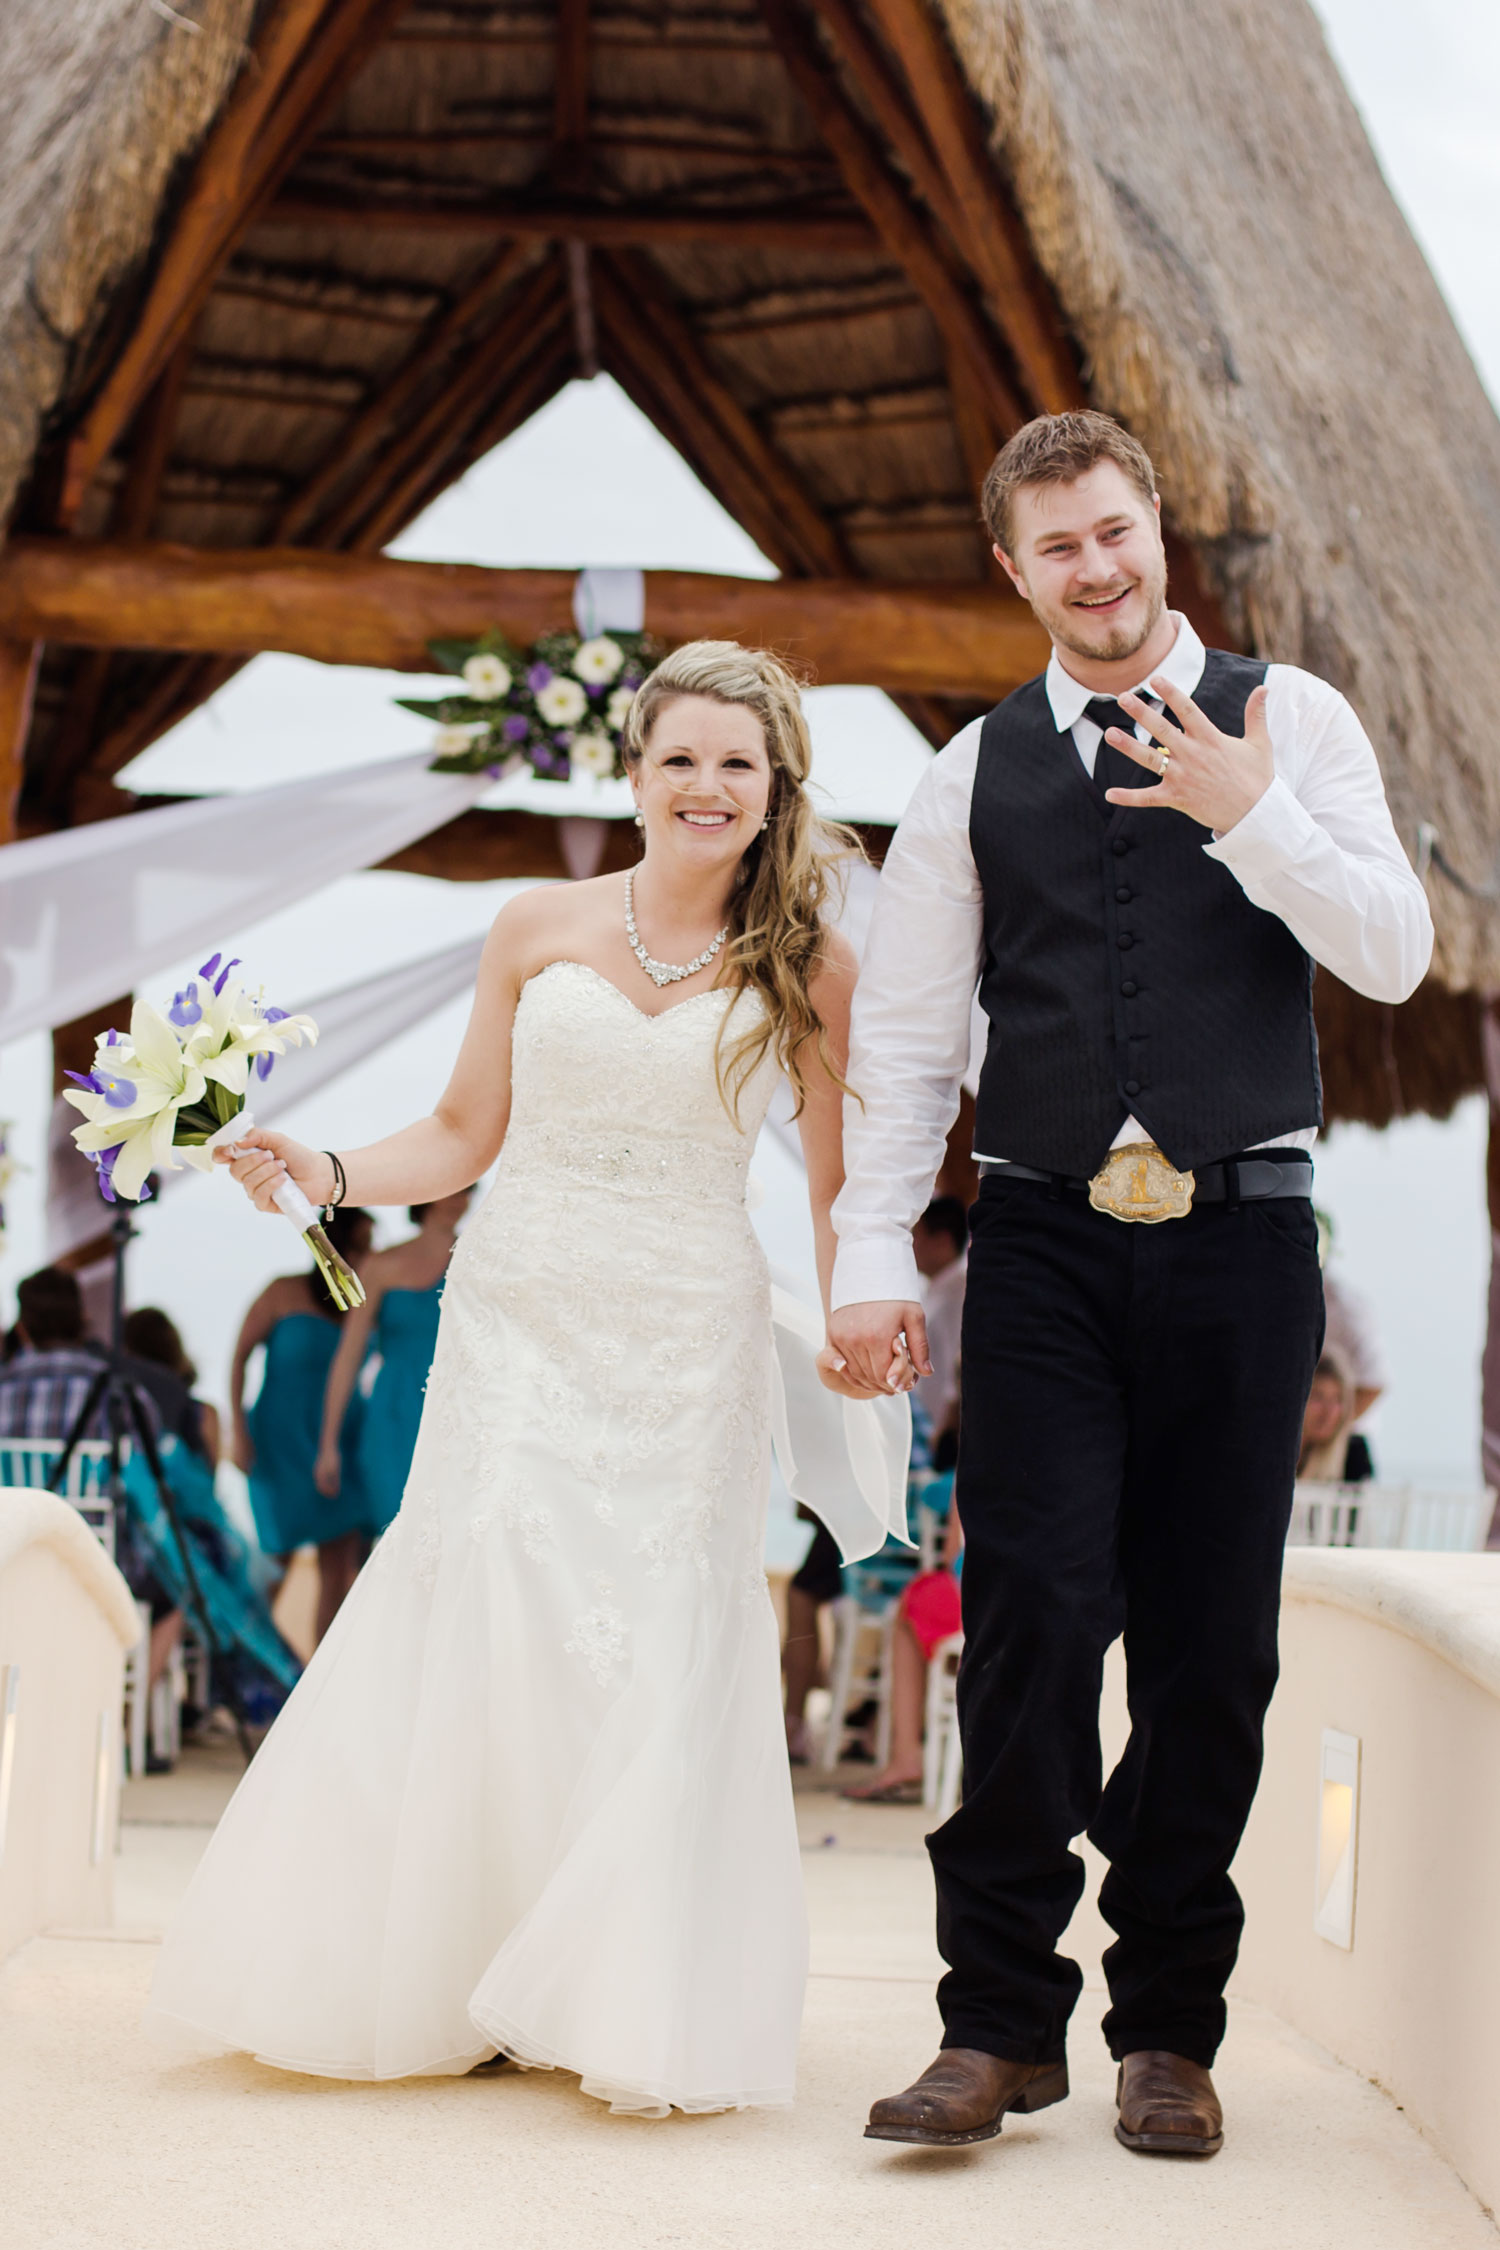 All smiles: The Kasner's couldn't have been happier with how their special day turned out.